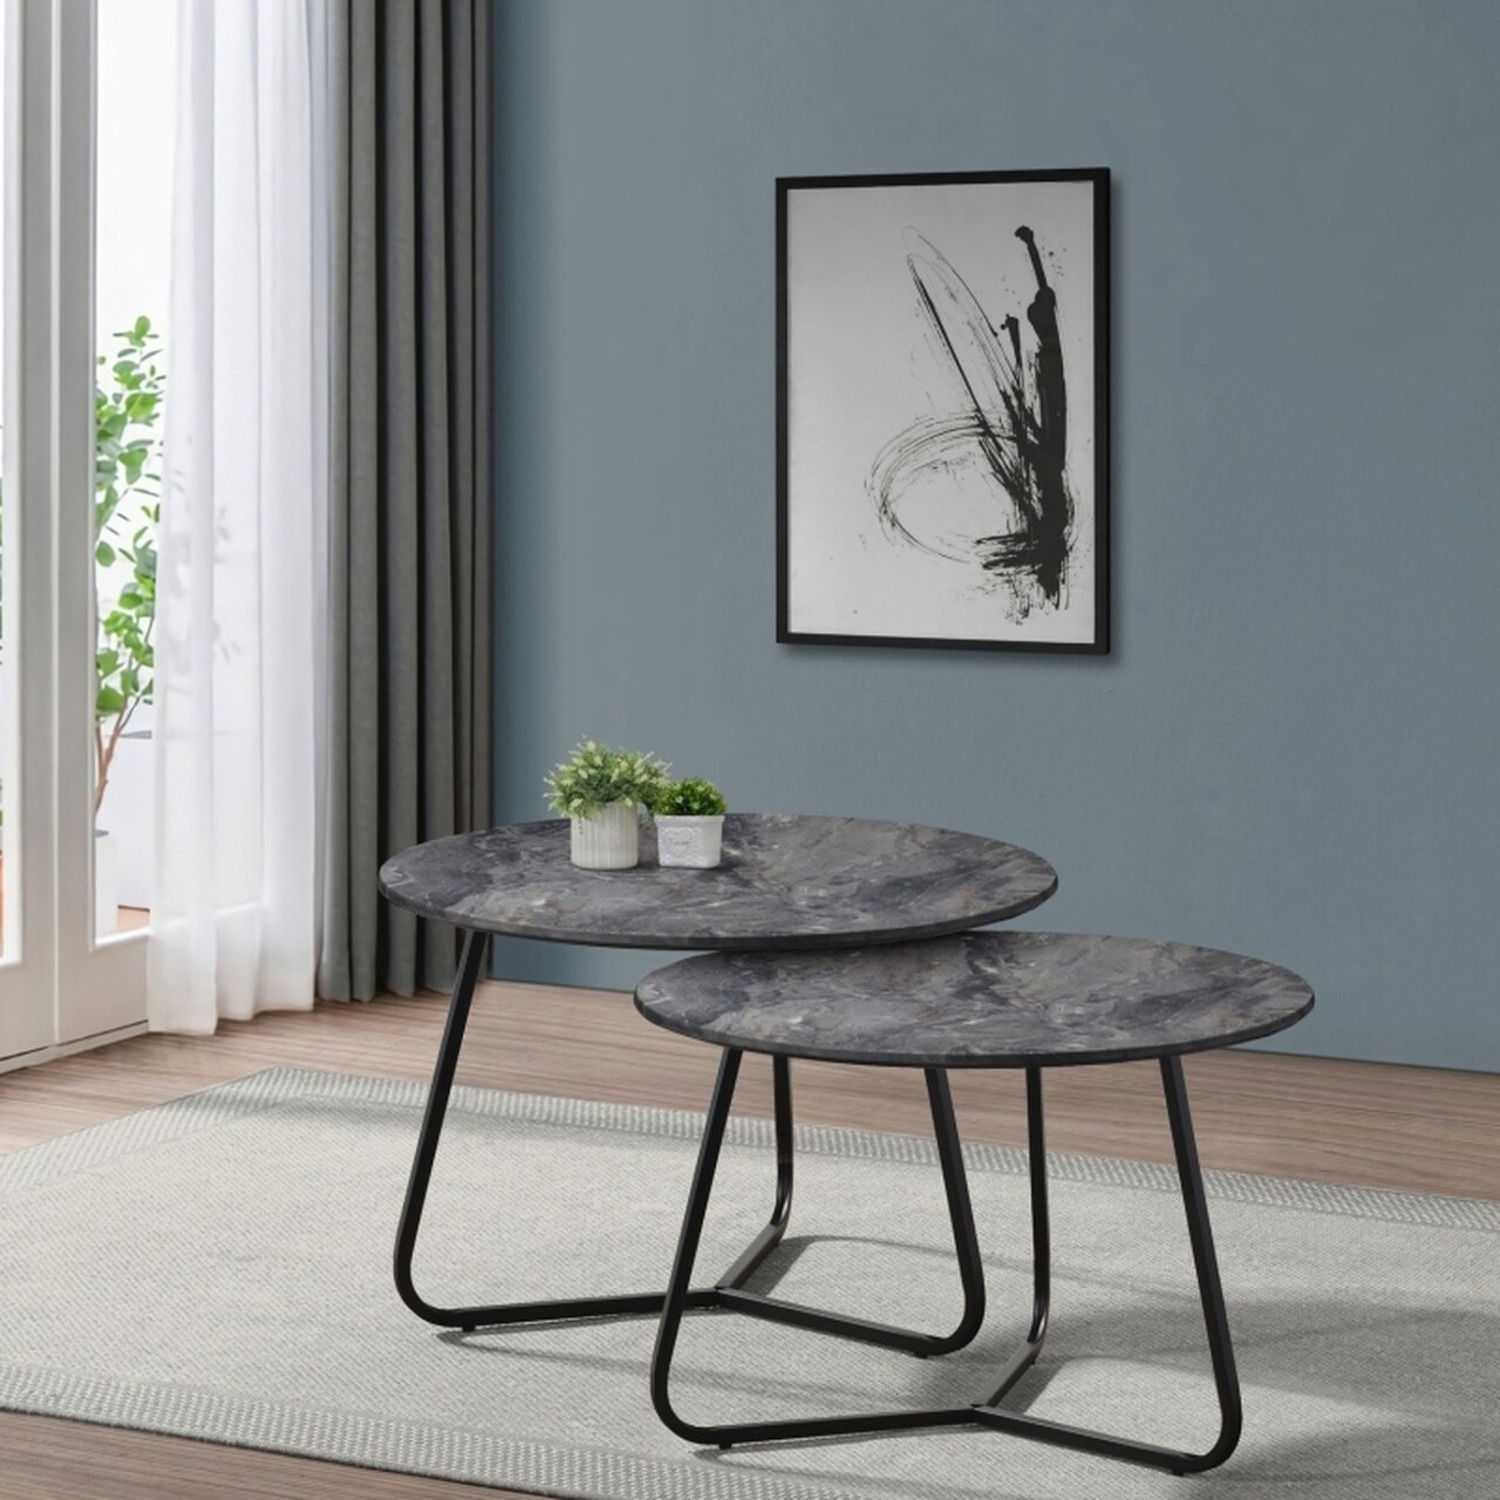 2-Piece Round Coffee Table In Matte Black Finish - image-4